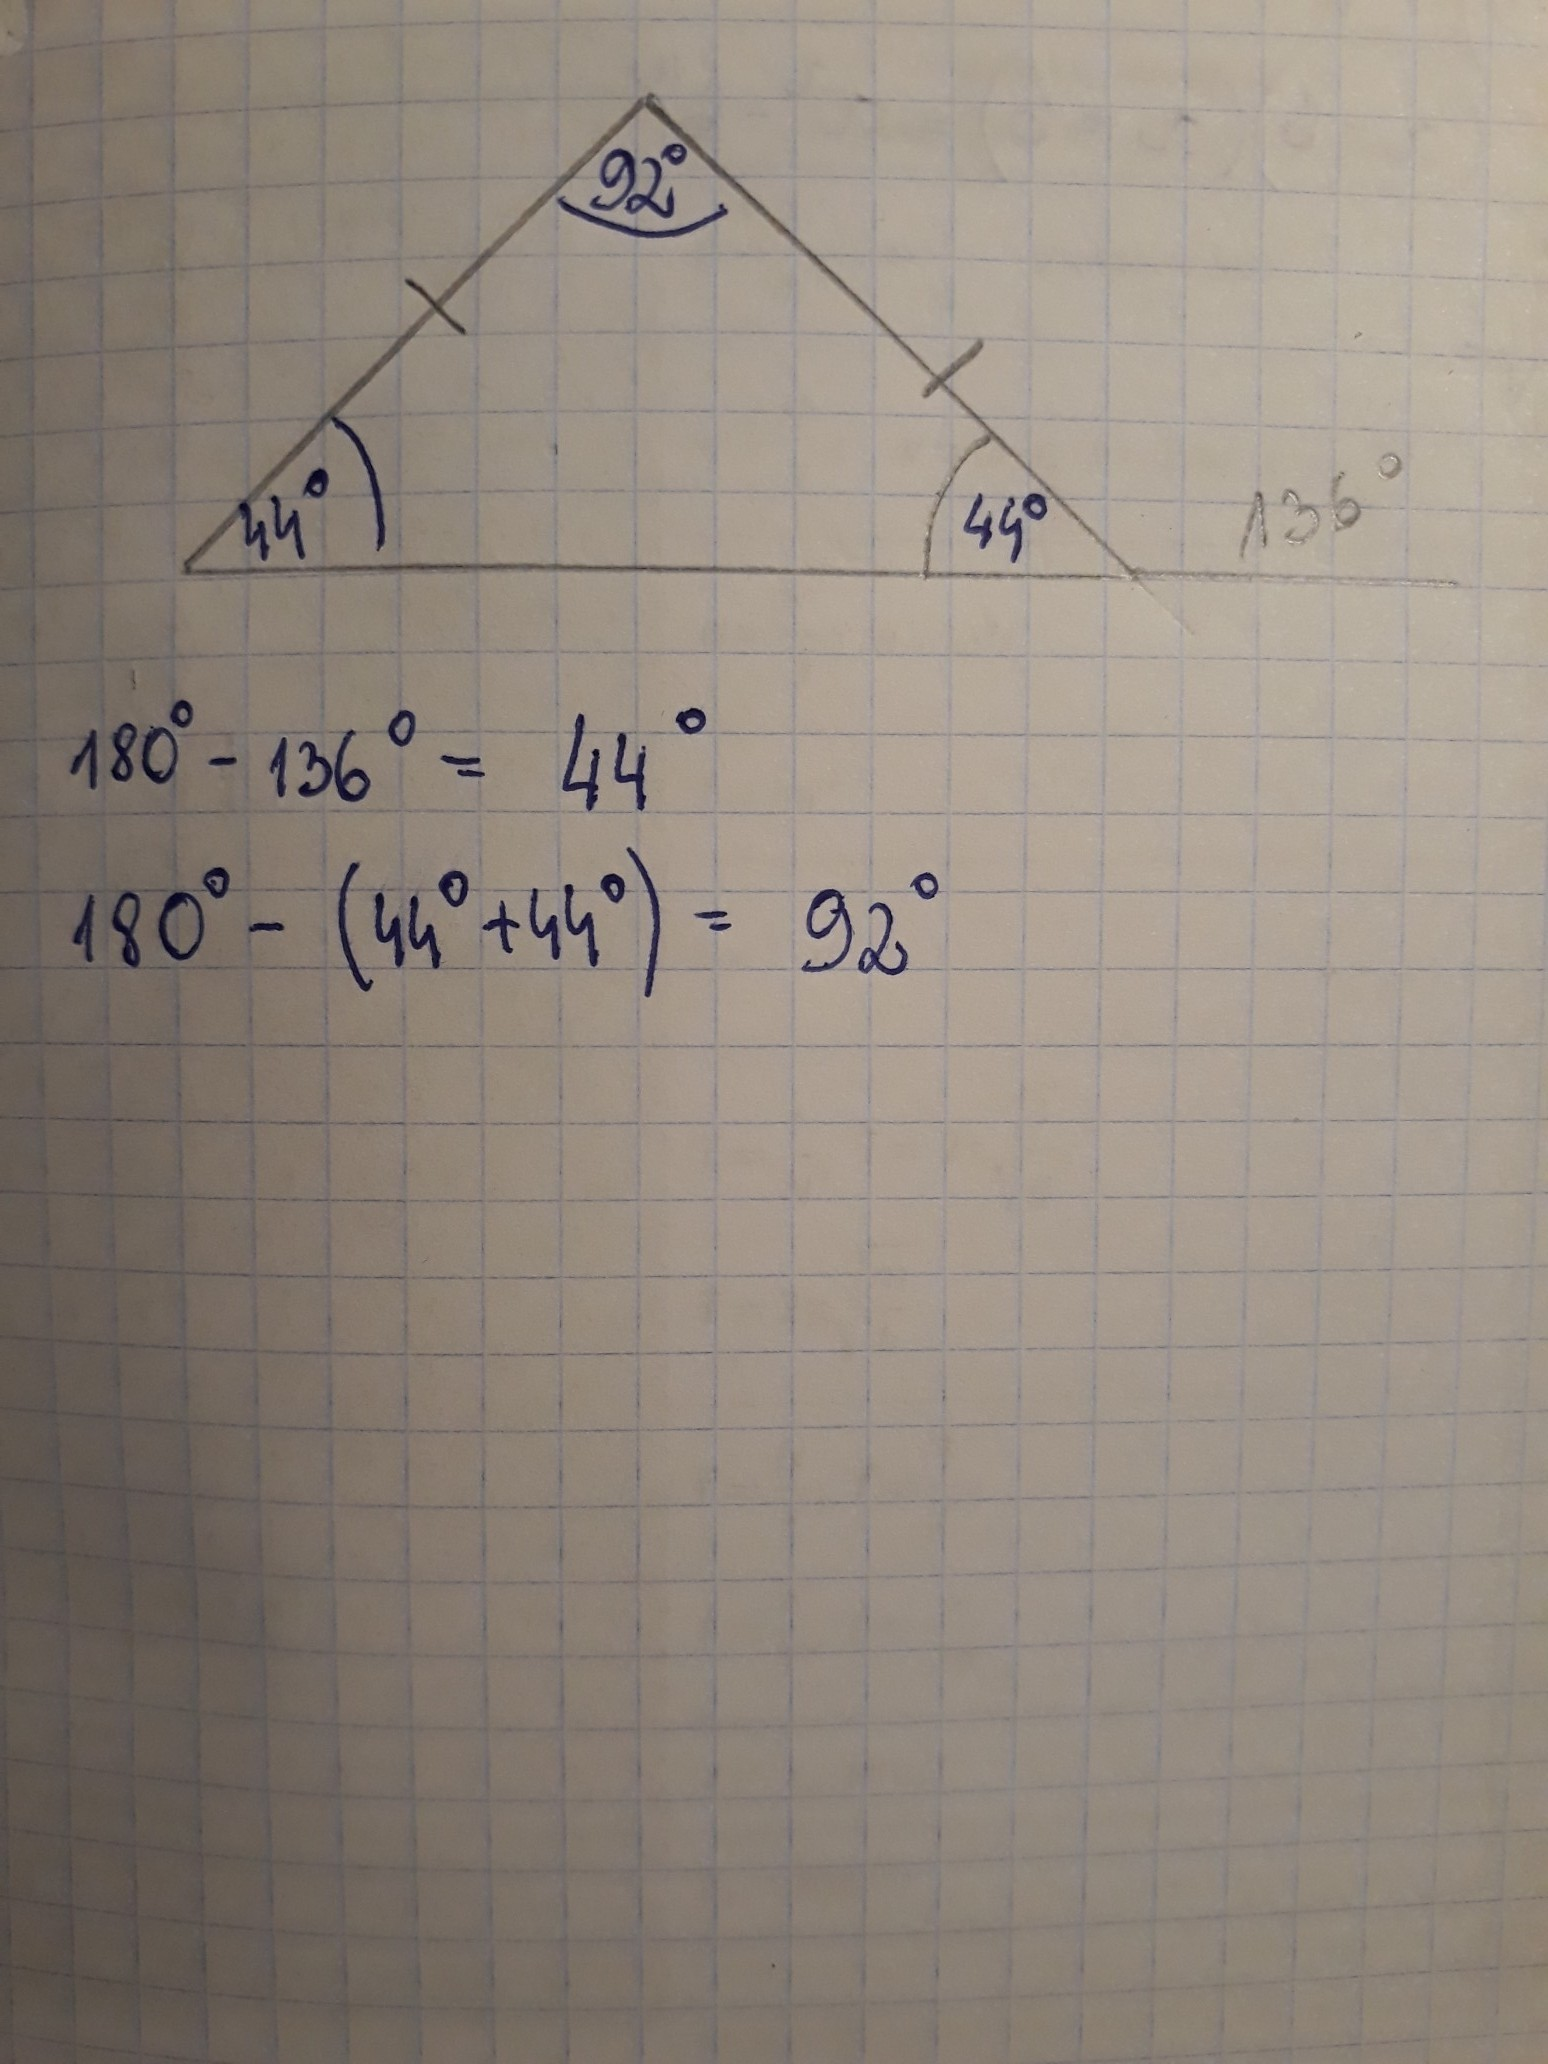 Find The Measure Of The Missing Angles In The Triangle